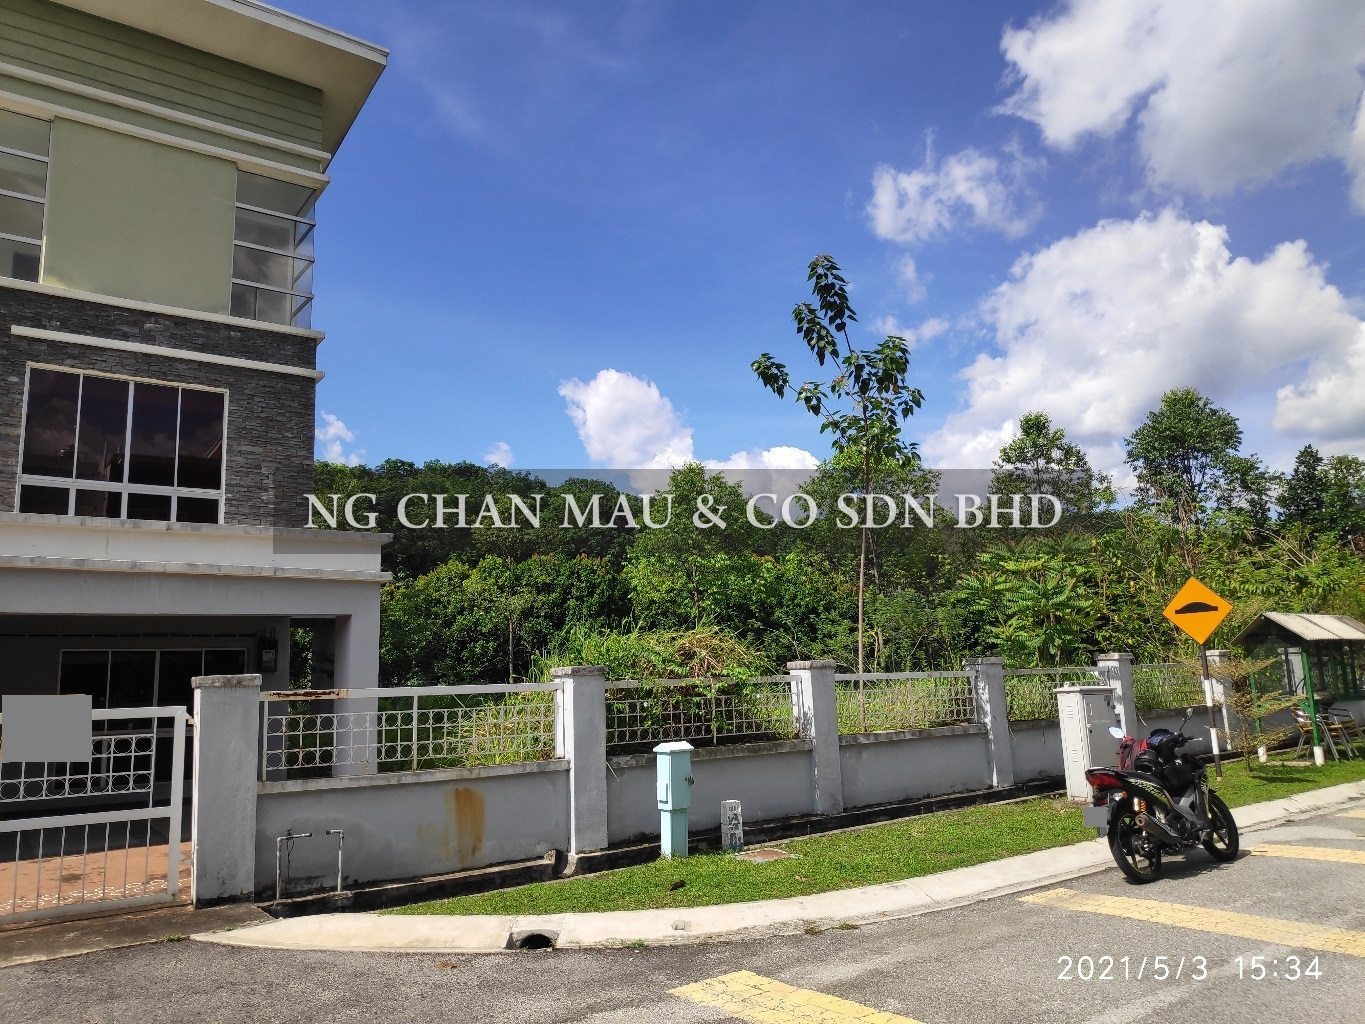 [Price dropped 19% + Vacant Unit] Freehold 5 Bedroom + 4 Bathroom Spacious 3 Storey Terrace House, Corner Lot [5 min to Kuang KTM Station; 70% Occupancy Rate]